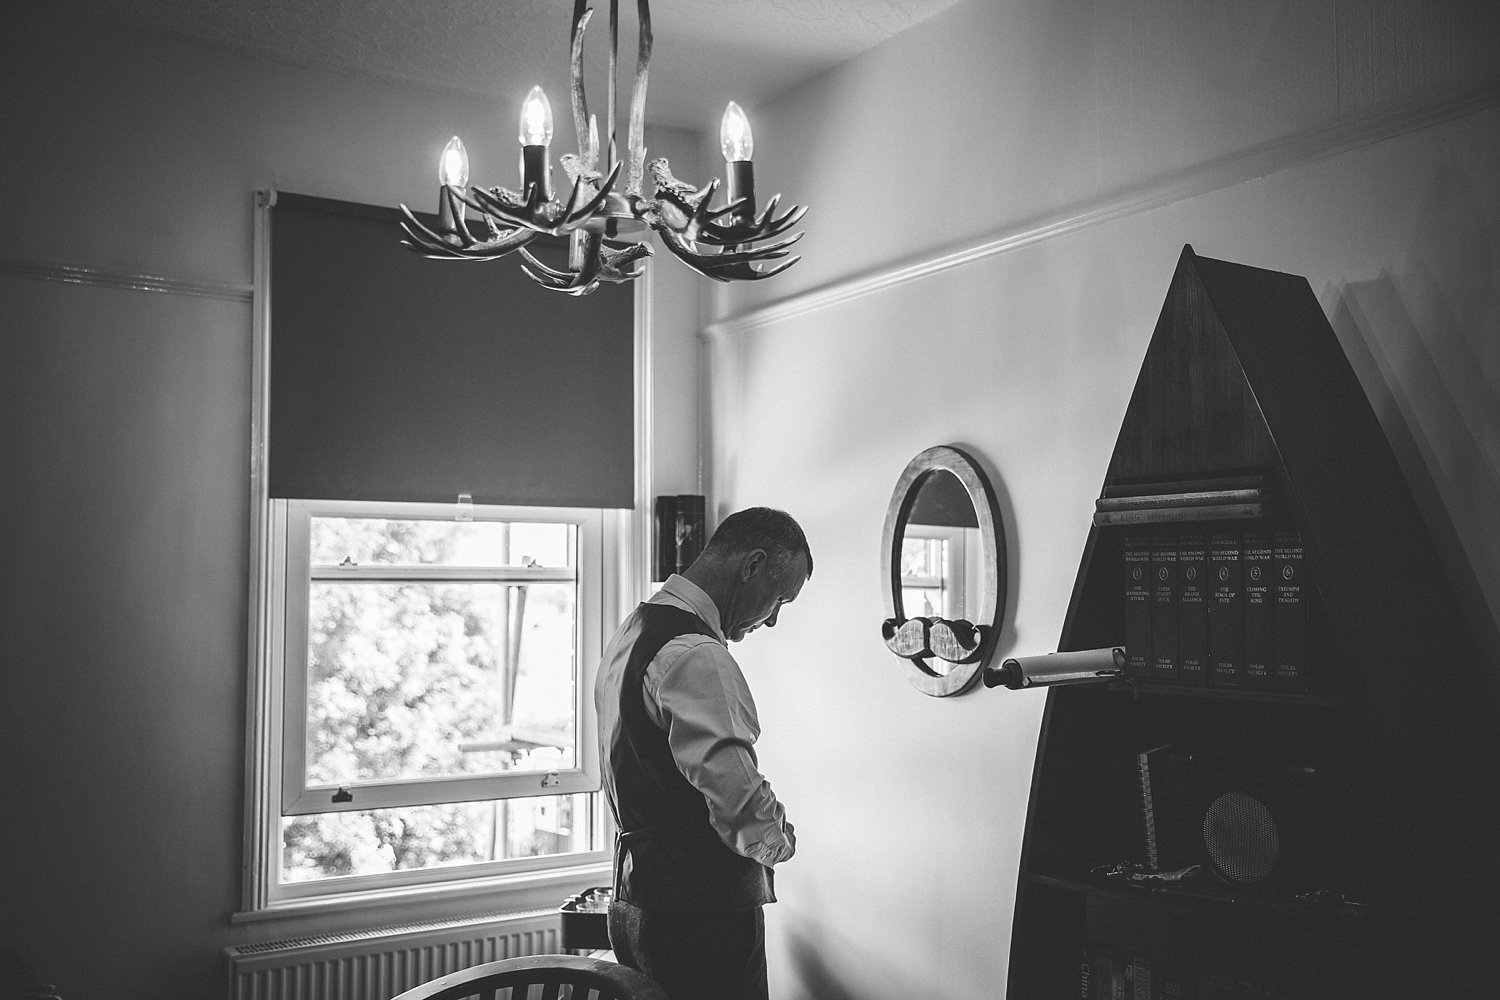 Natlie-Matthew-yorkshire-natural-relaxed-fun-documentary-reportage-candid-wedding-photography-photographer-Derby-Nottingham-Derbyshire-Nottinghamshire-Leicestershire-Lincolnshire-East-Midlands-16.jpg